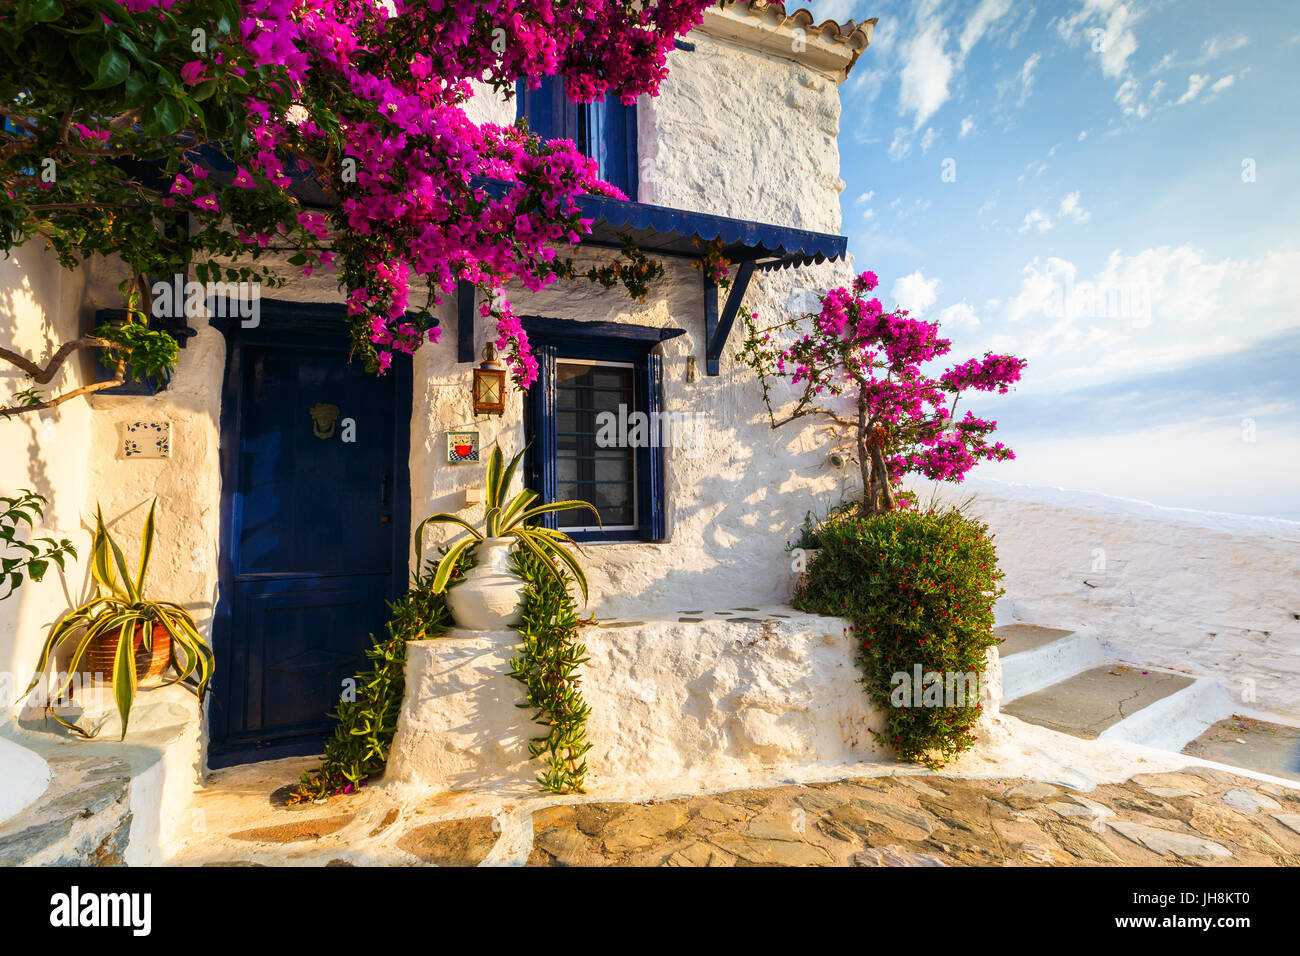 Facade of an old building in Skopelos town, Greece. - Stock Image